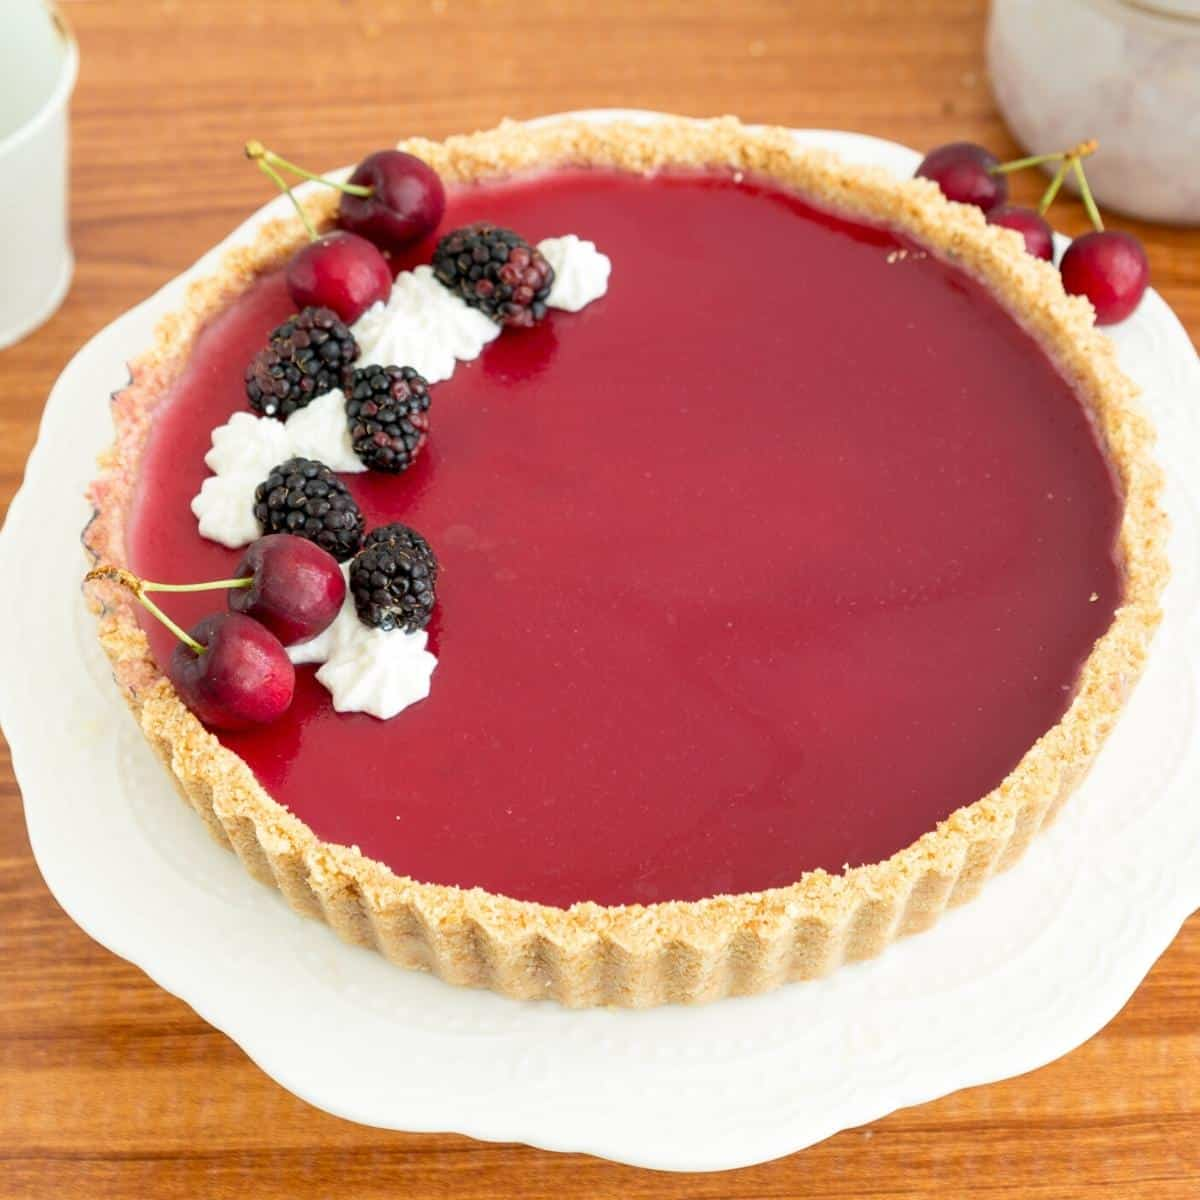 Panna cotta tart with blackberries on a cake stand.